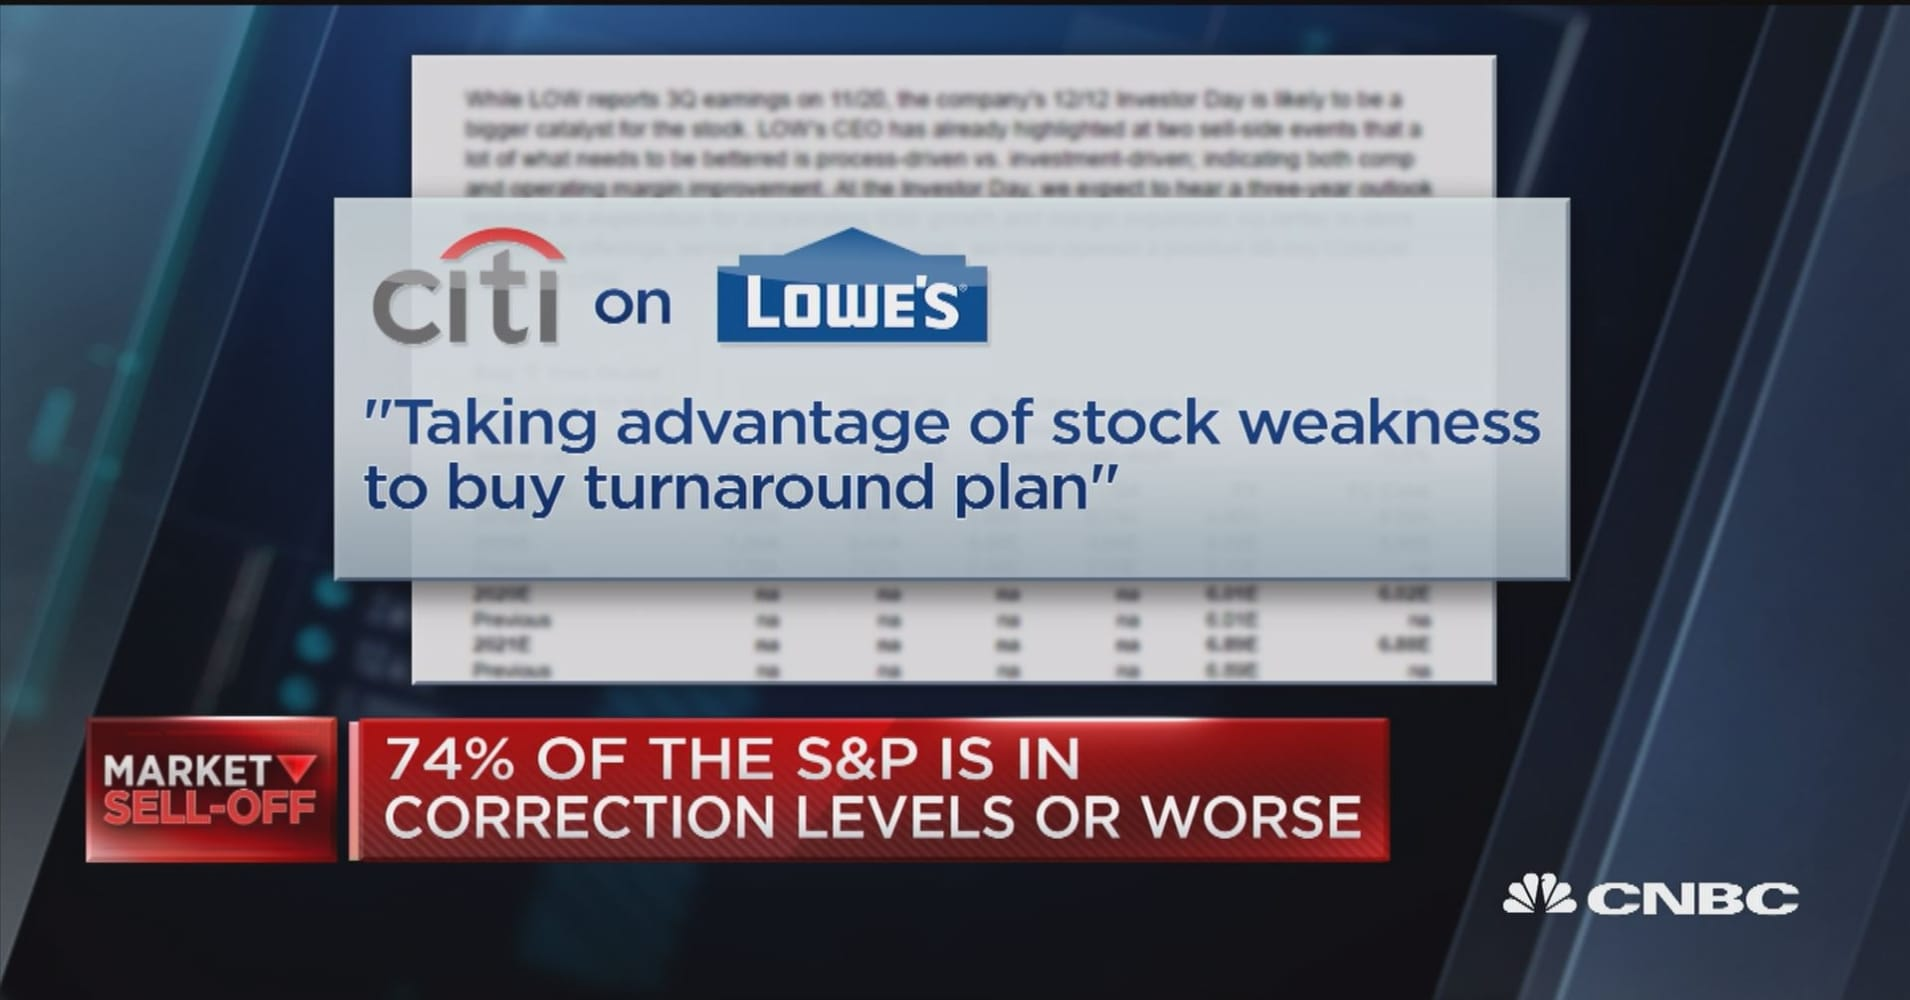 Lowes Is On Pace For Its Worst Month In More Than 6 Years But Citi